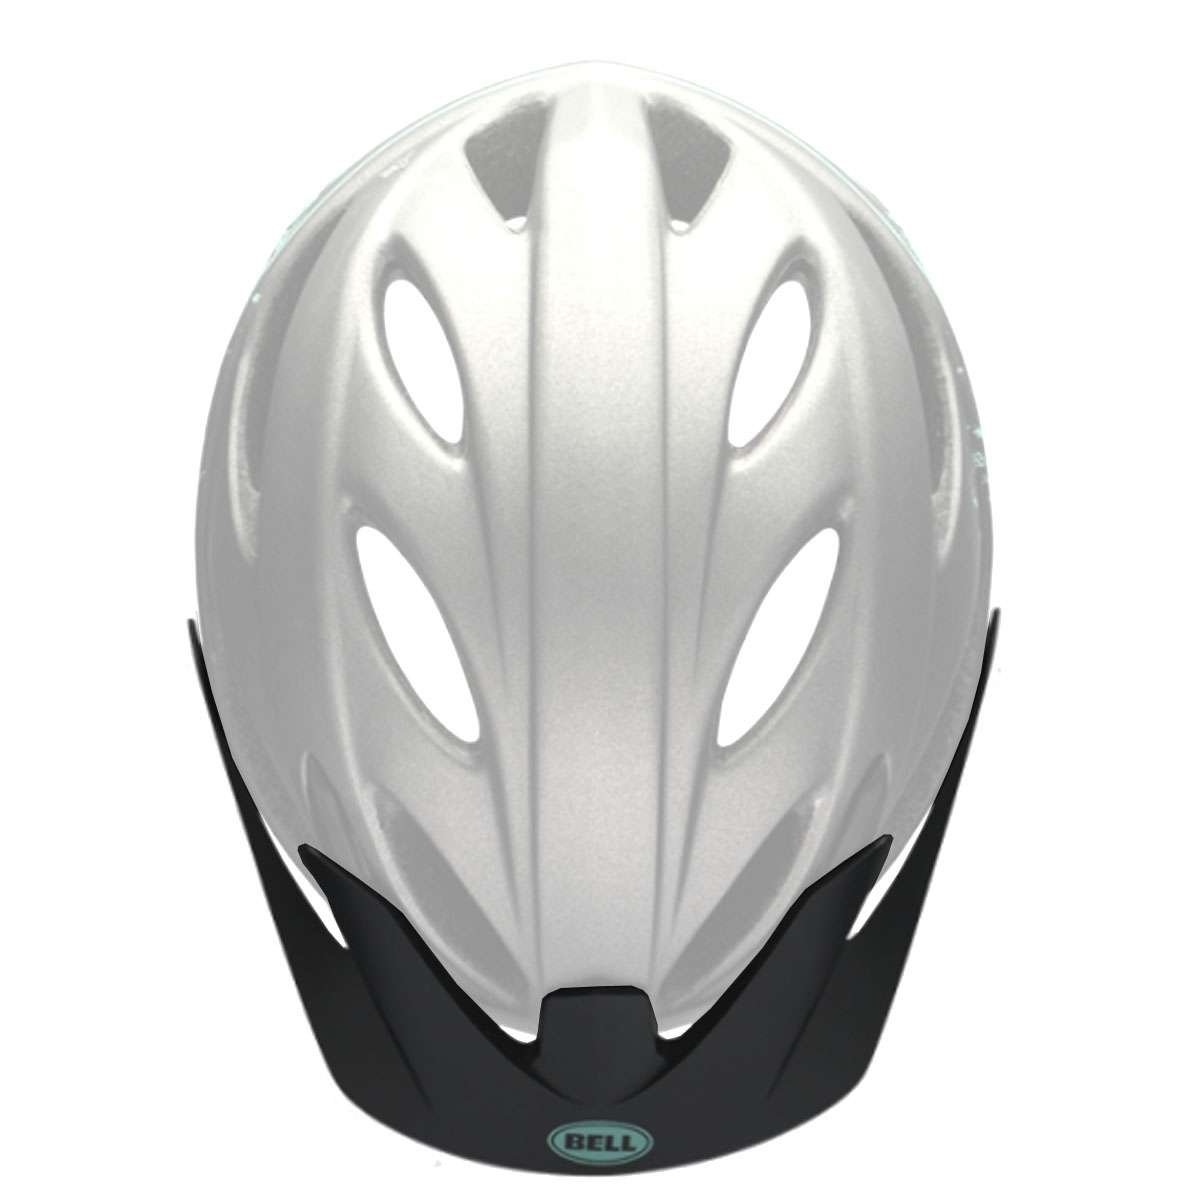 Bell Sports Strut Bicycle Helmet - Replacement Visor - Matte Gunmetal/Mint Sonic - 8047358